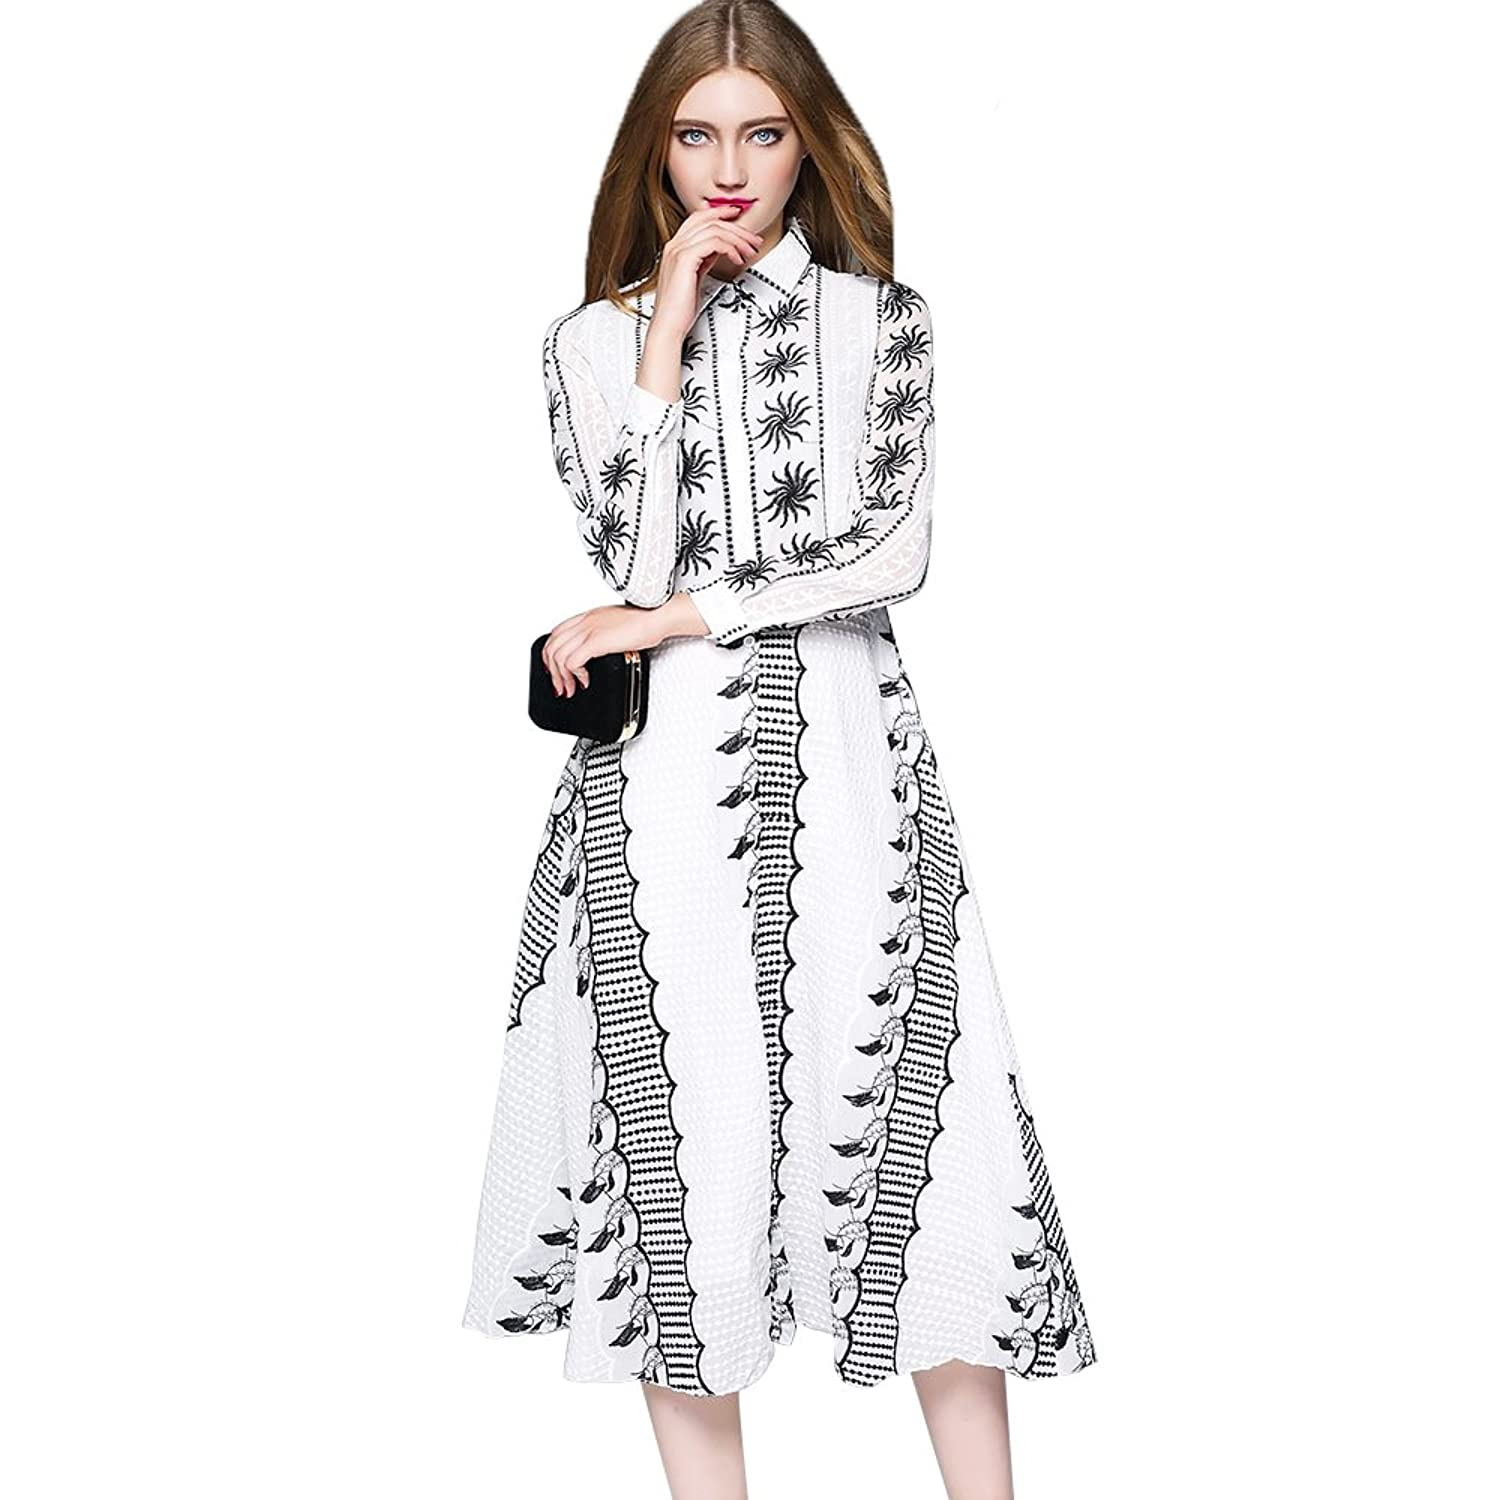 Dezzal Women's Long Sleeve Embroidered Fit and Flare Midi Shirt Dress